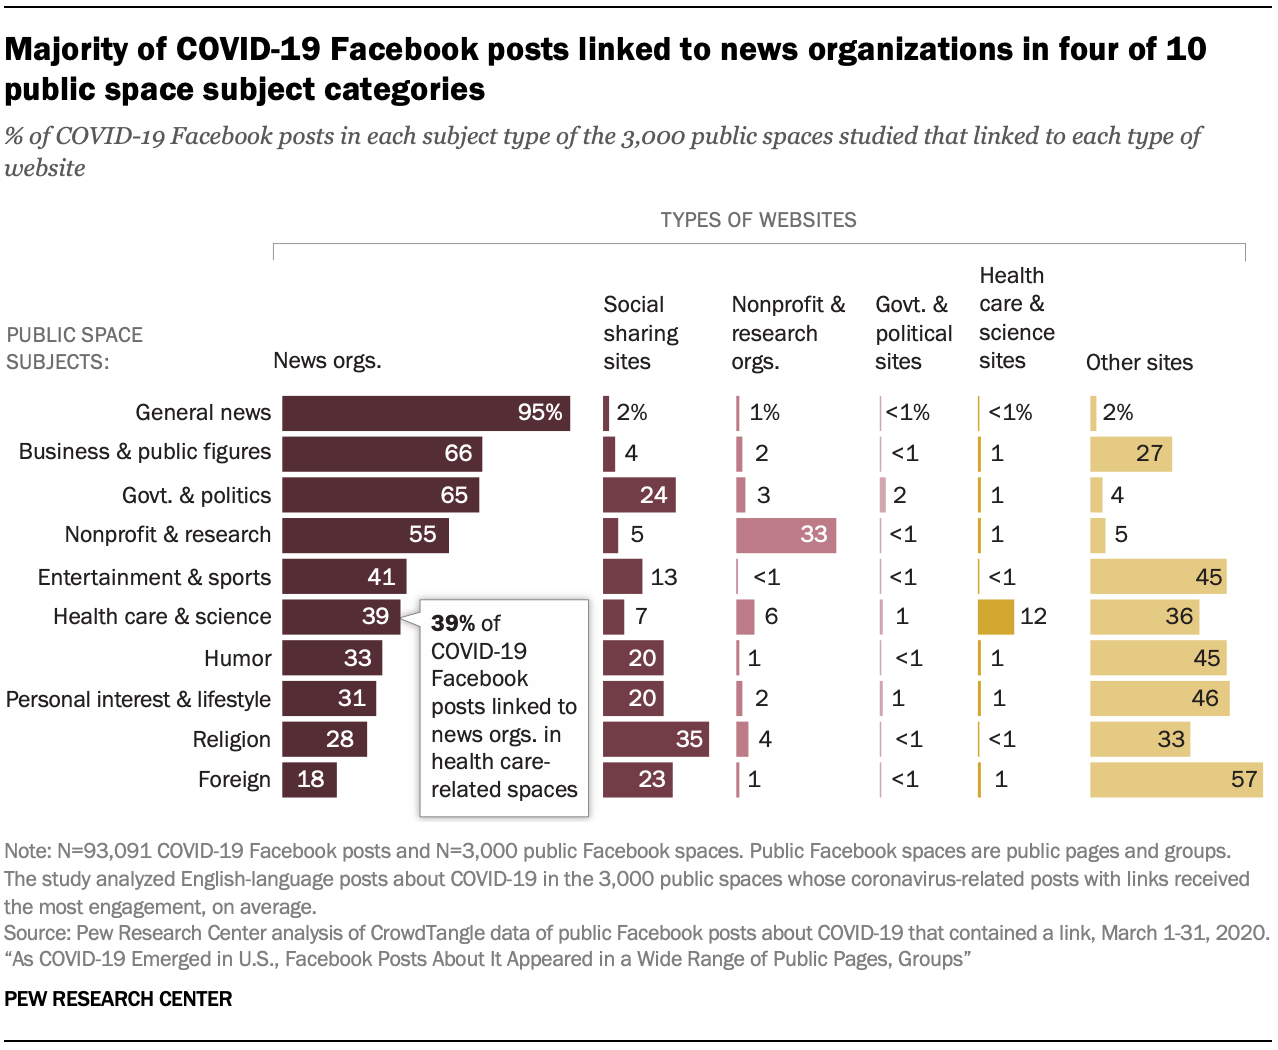 Majority of COVID-19 Facebook posts linked to news organizations in four of 10 public space subject categories